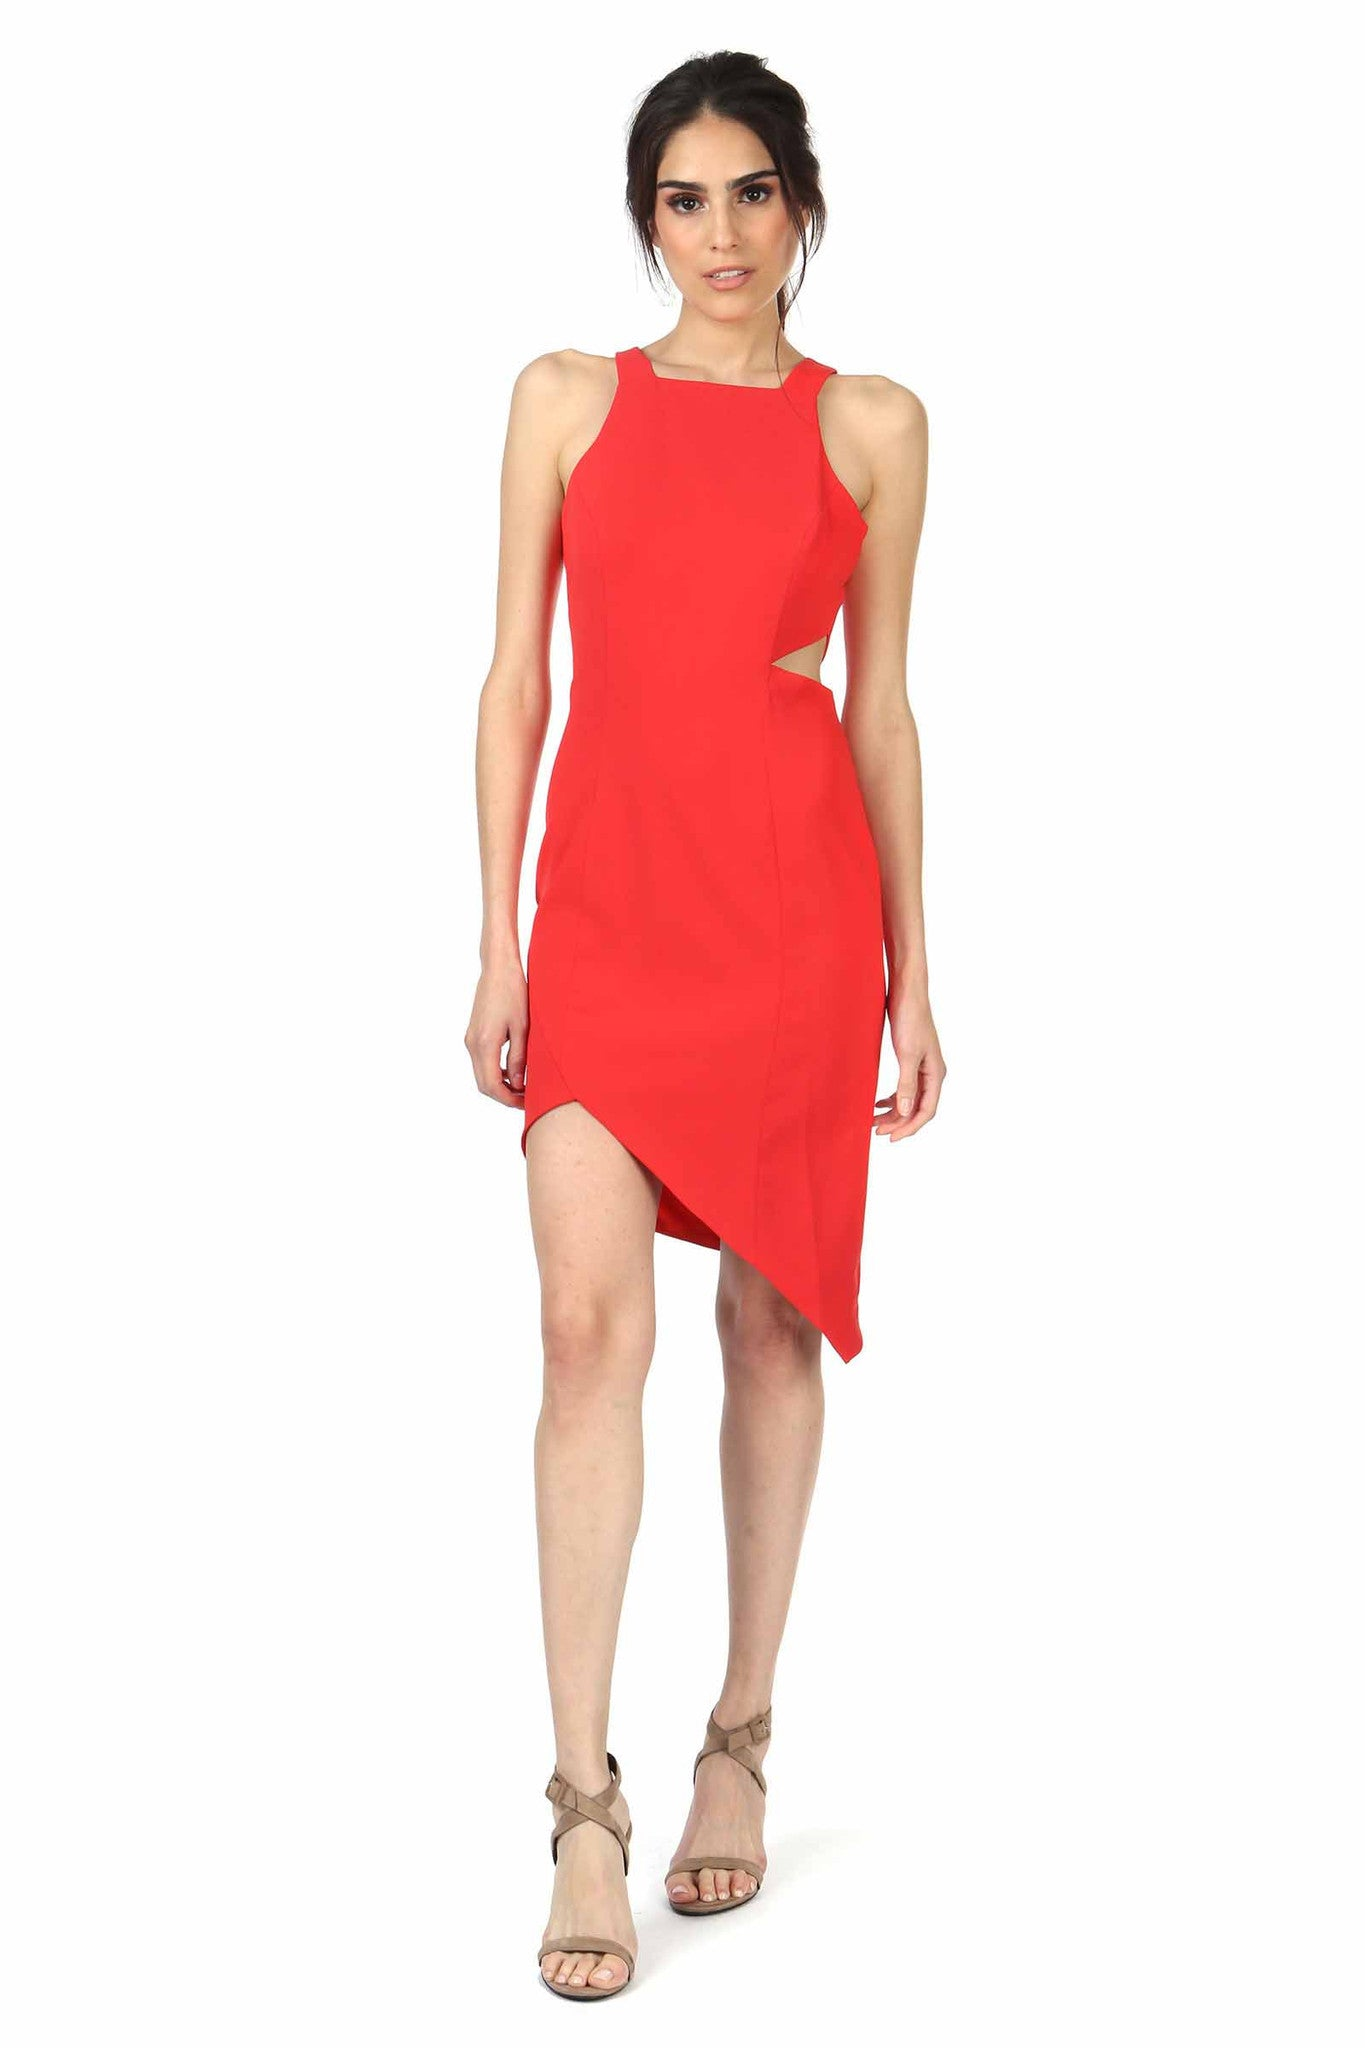 Jay Godfrey Red Cutout High-Neck Dress - Front View